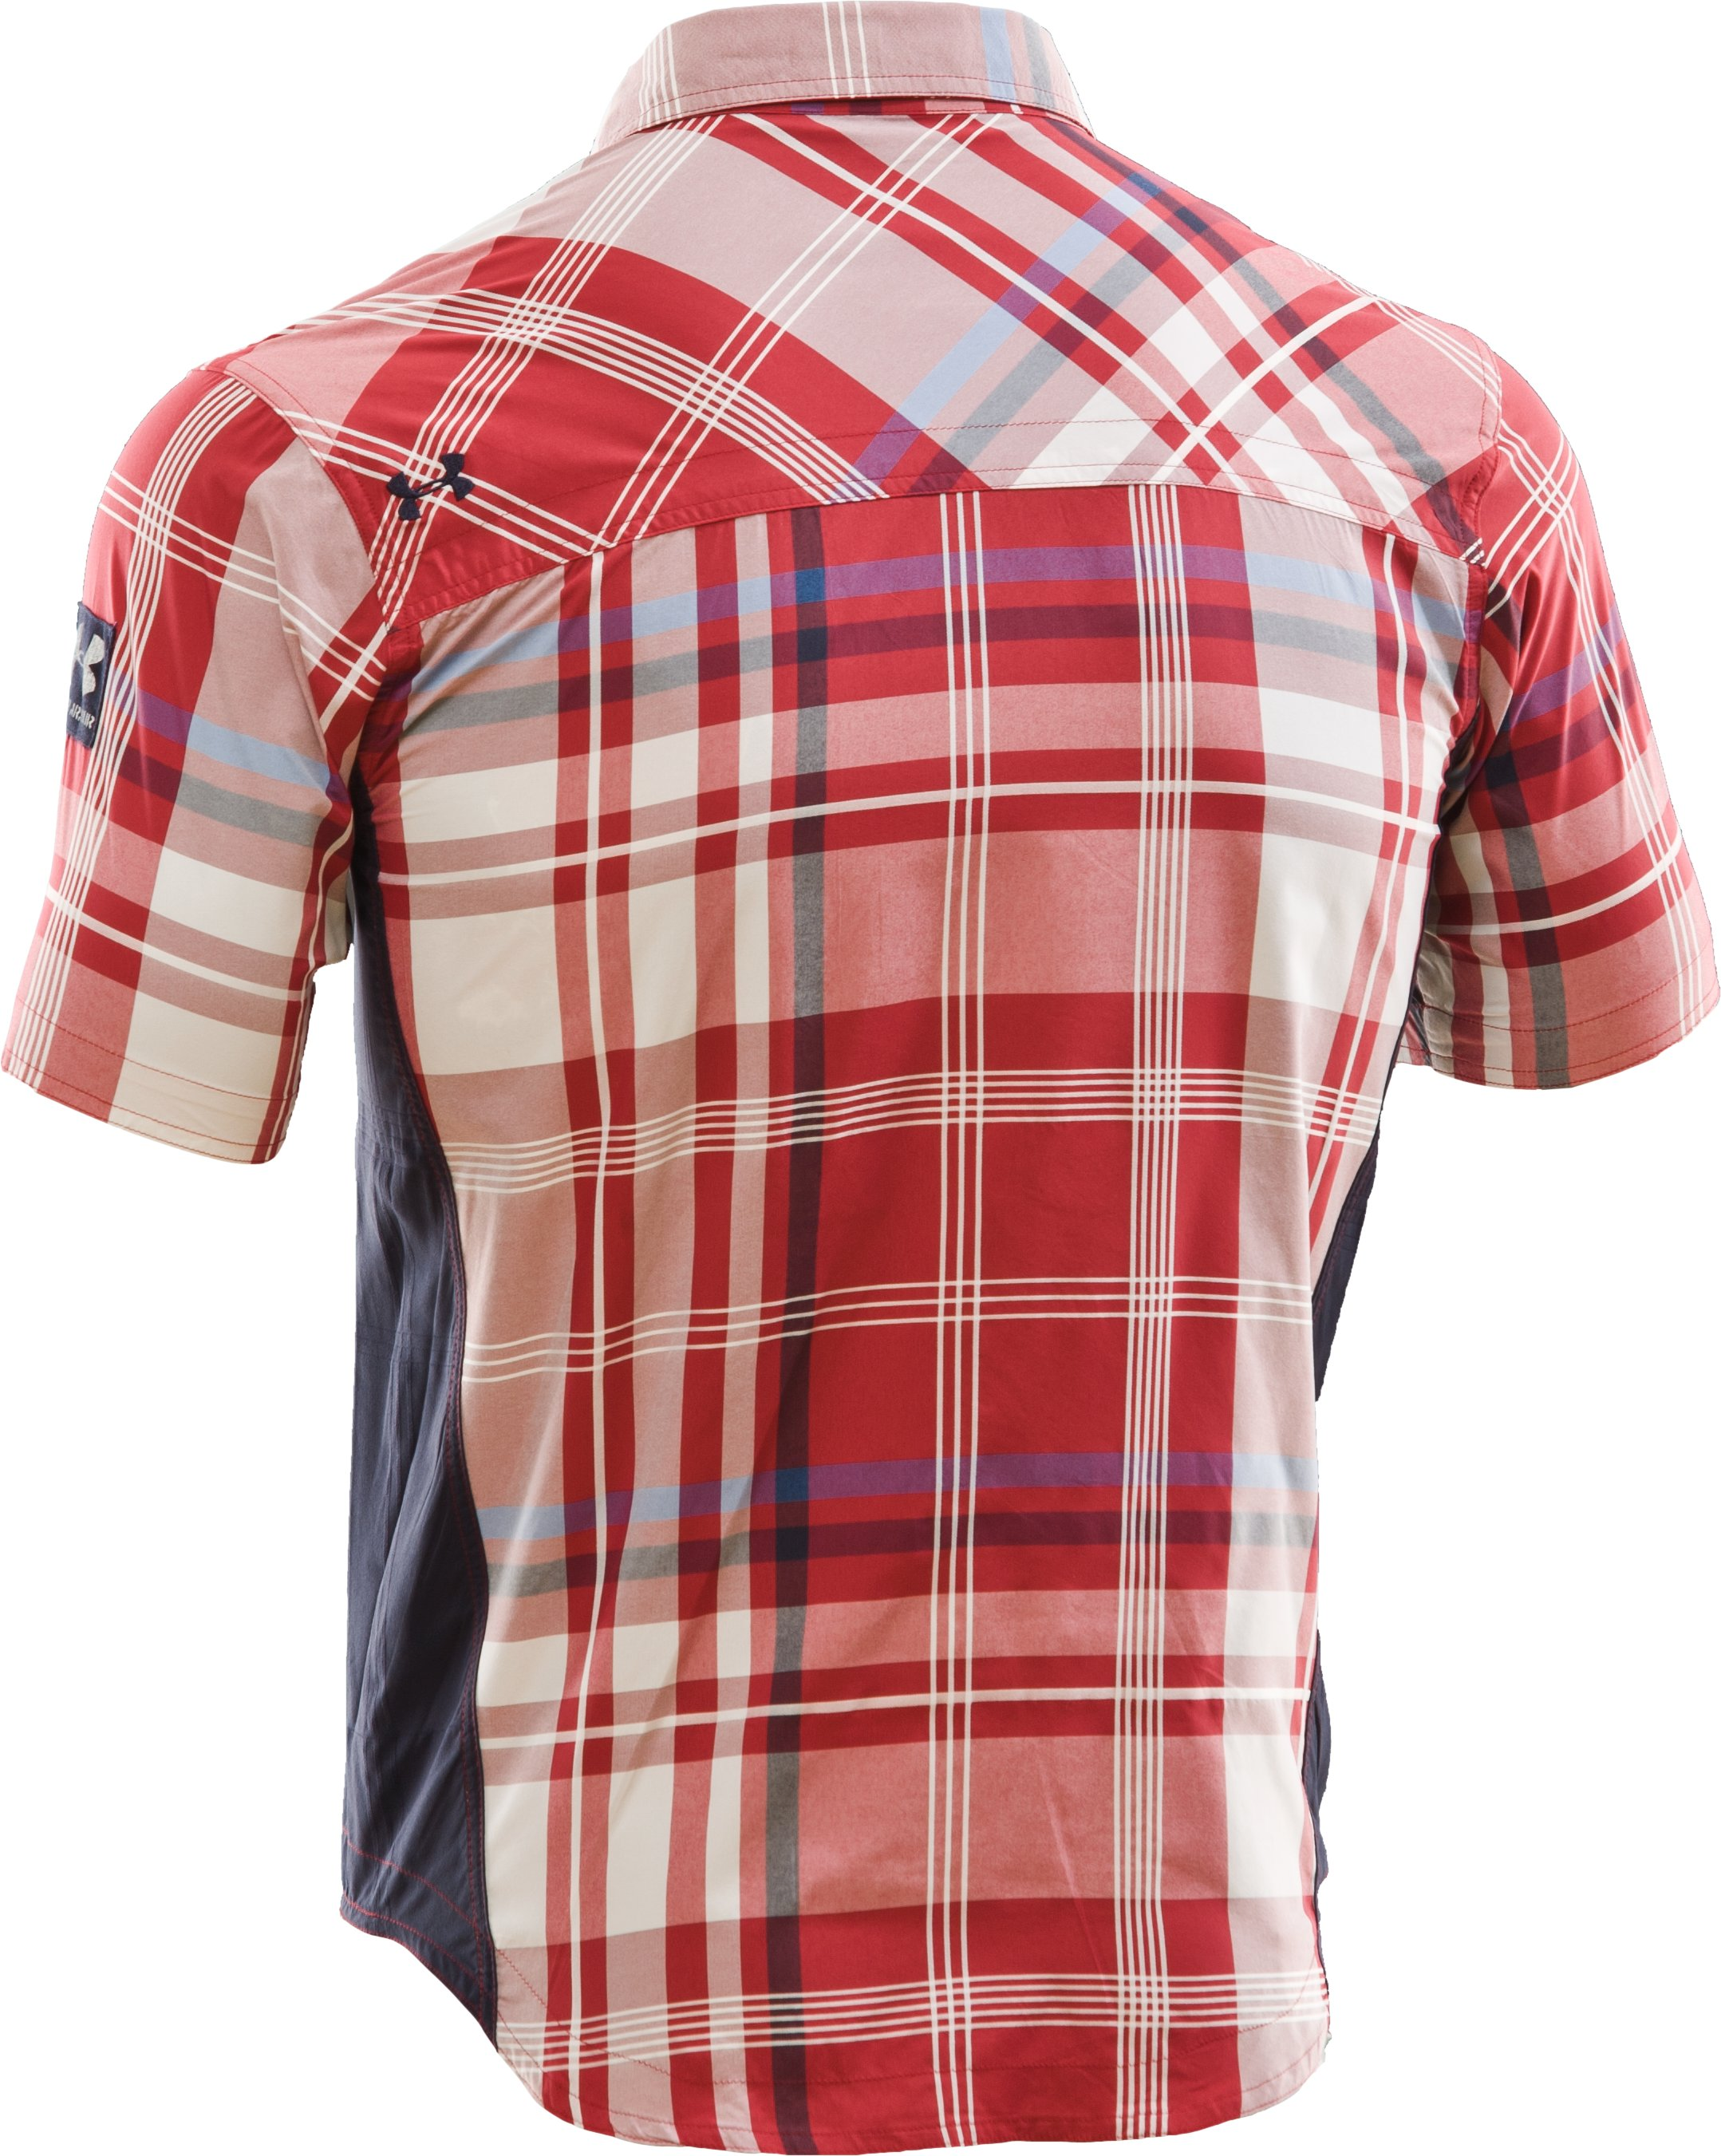 Men's Big Plaid Woven Short Sleeve Shirt, Crimson